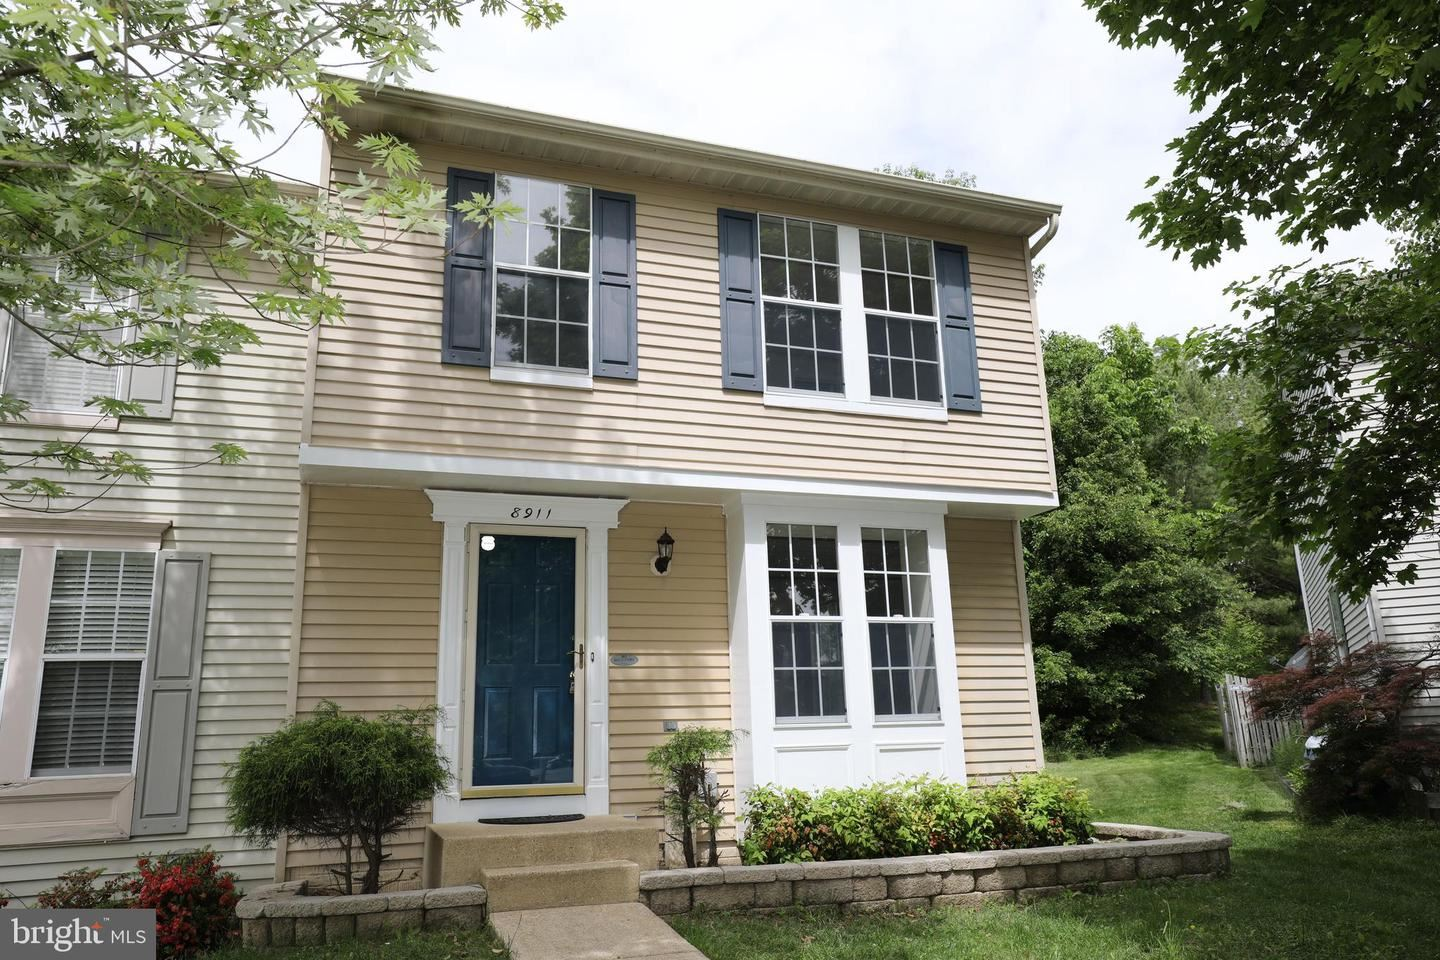 8911 OXLEY FOREST CT, Laurel, MD 20723 - MLS#: MDHW294612